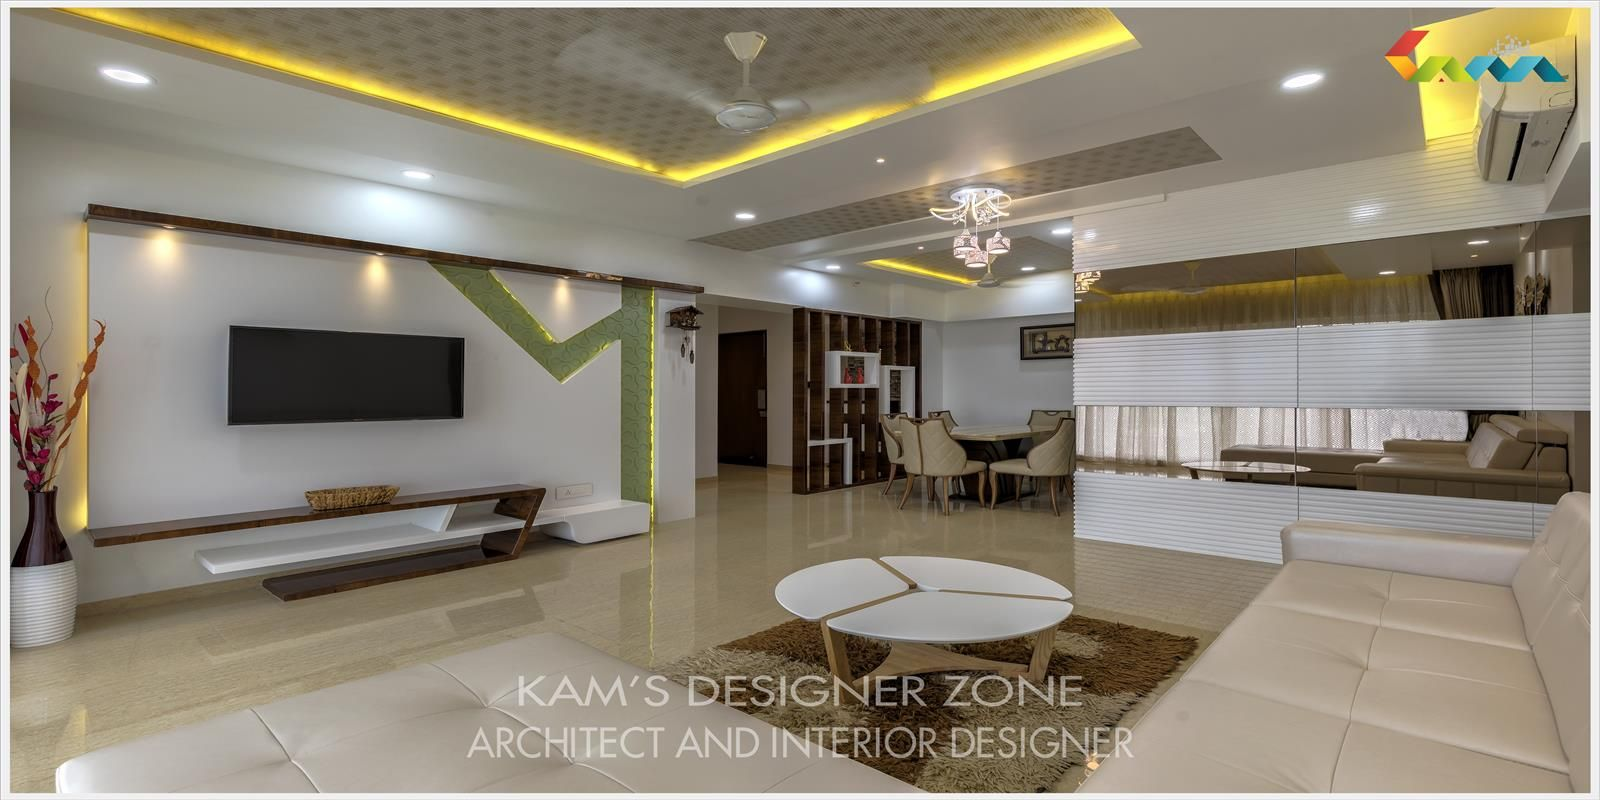 Kams Designer Interior Designer And Architecture In 2020 Room